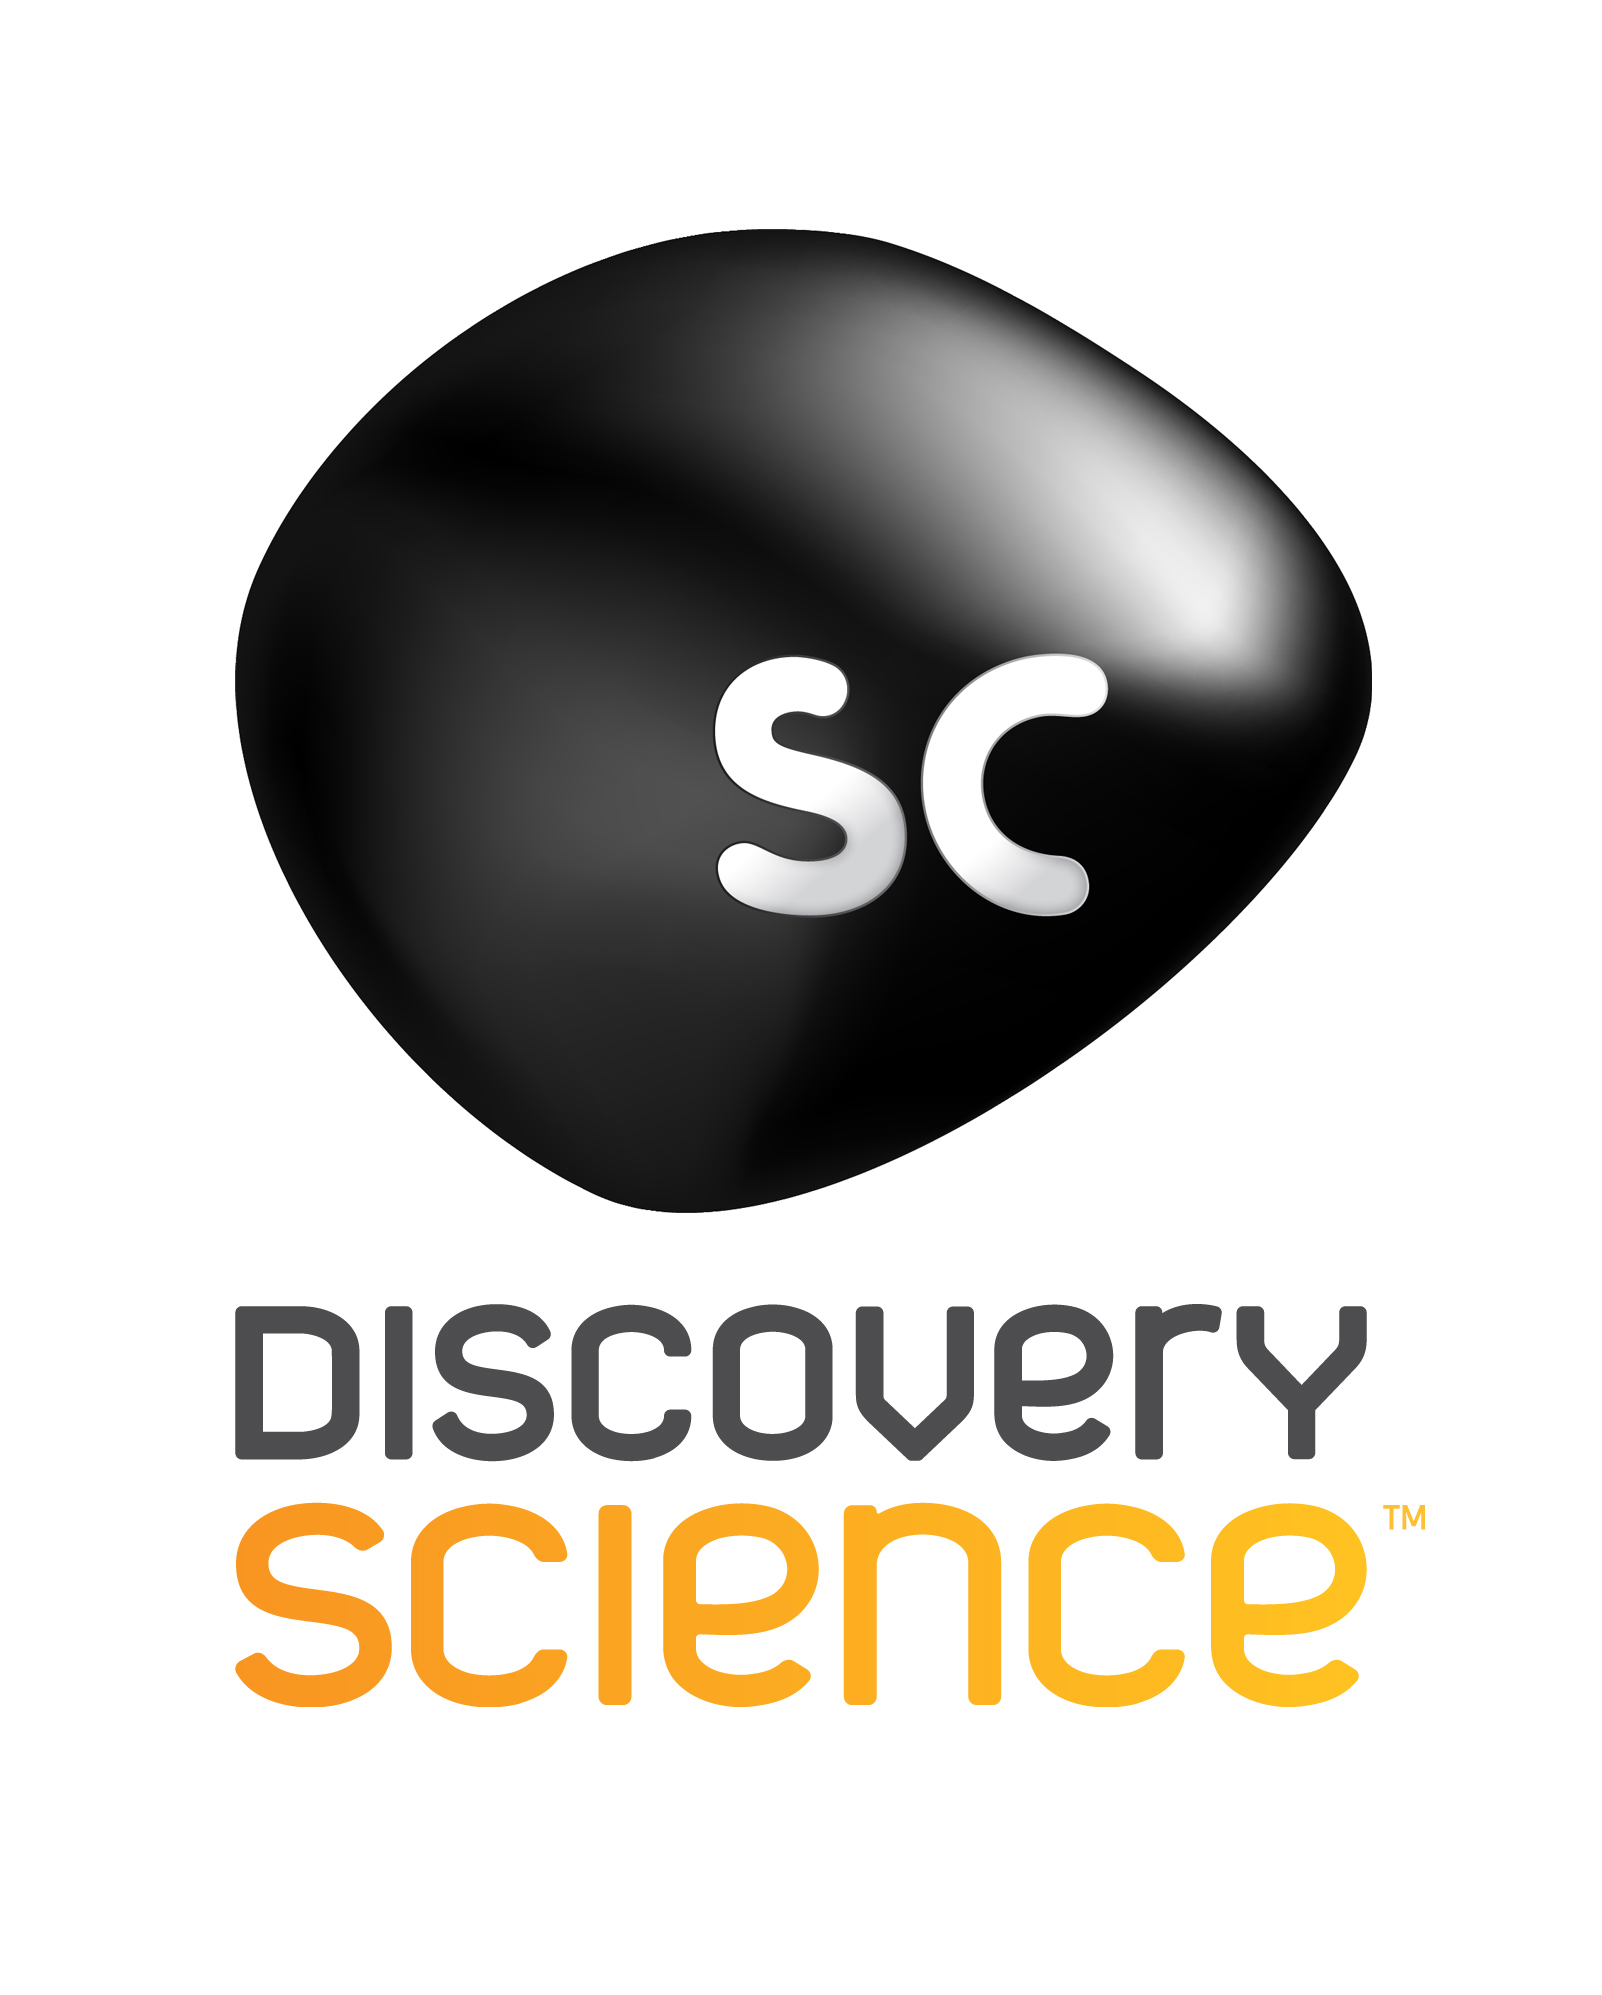 DISCOVERY SCIENCE SC LOGO HIGH RES 01